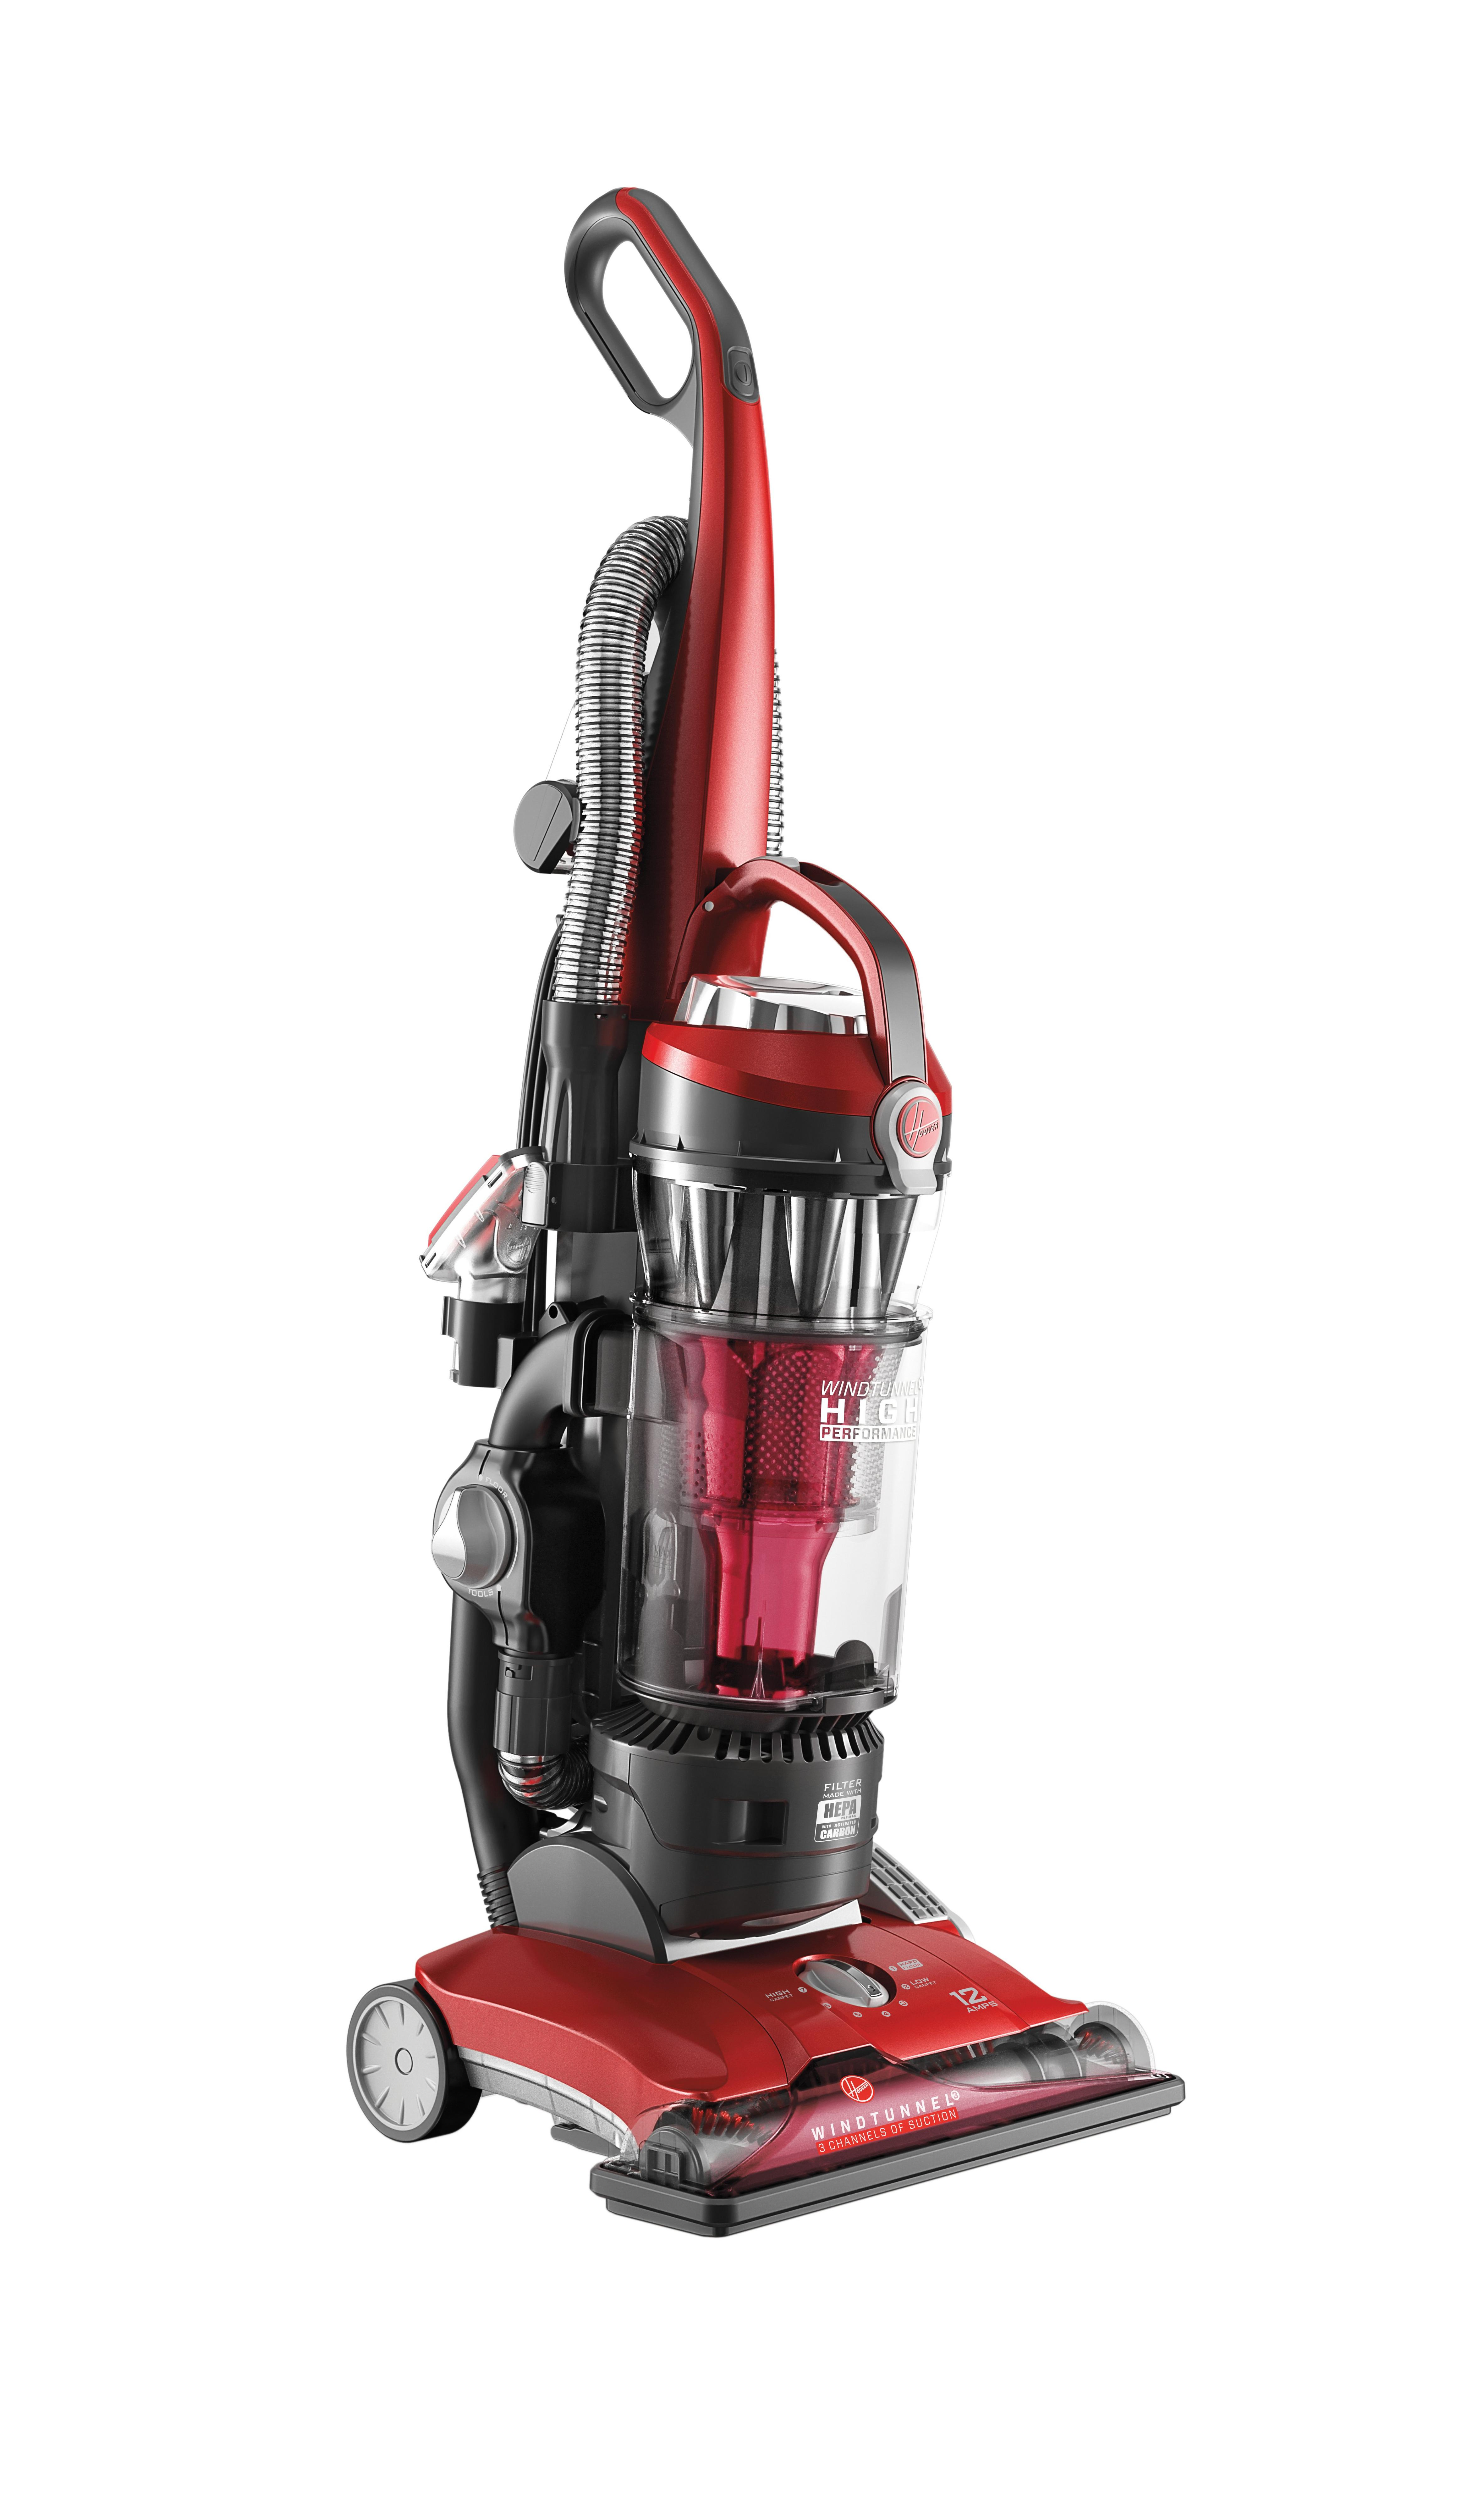 Hoover High Performance Bagless Upright Vacuum Cleaner Refurbished